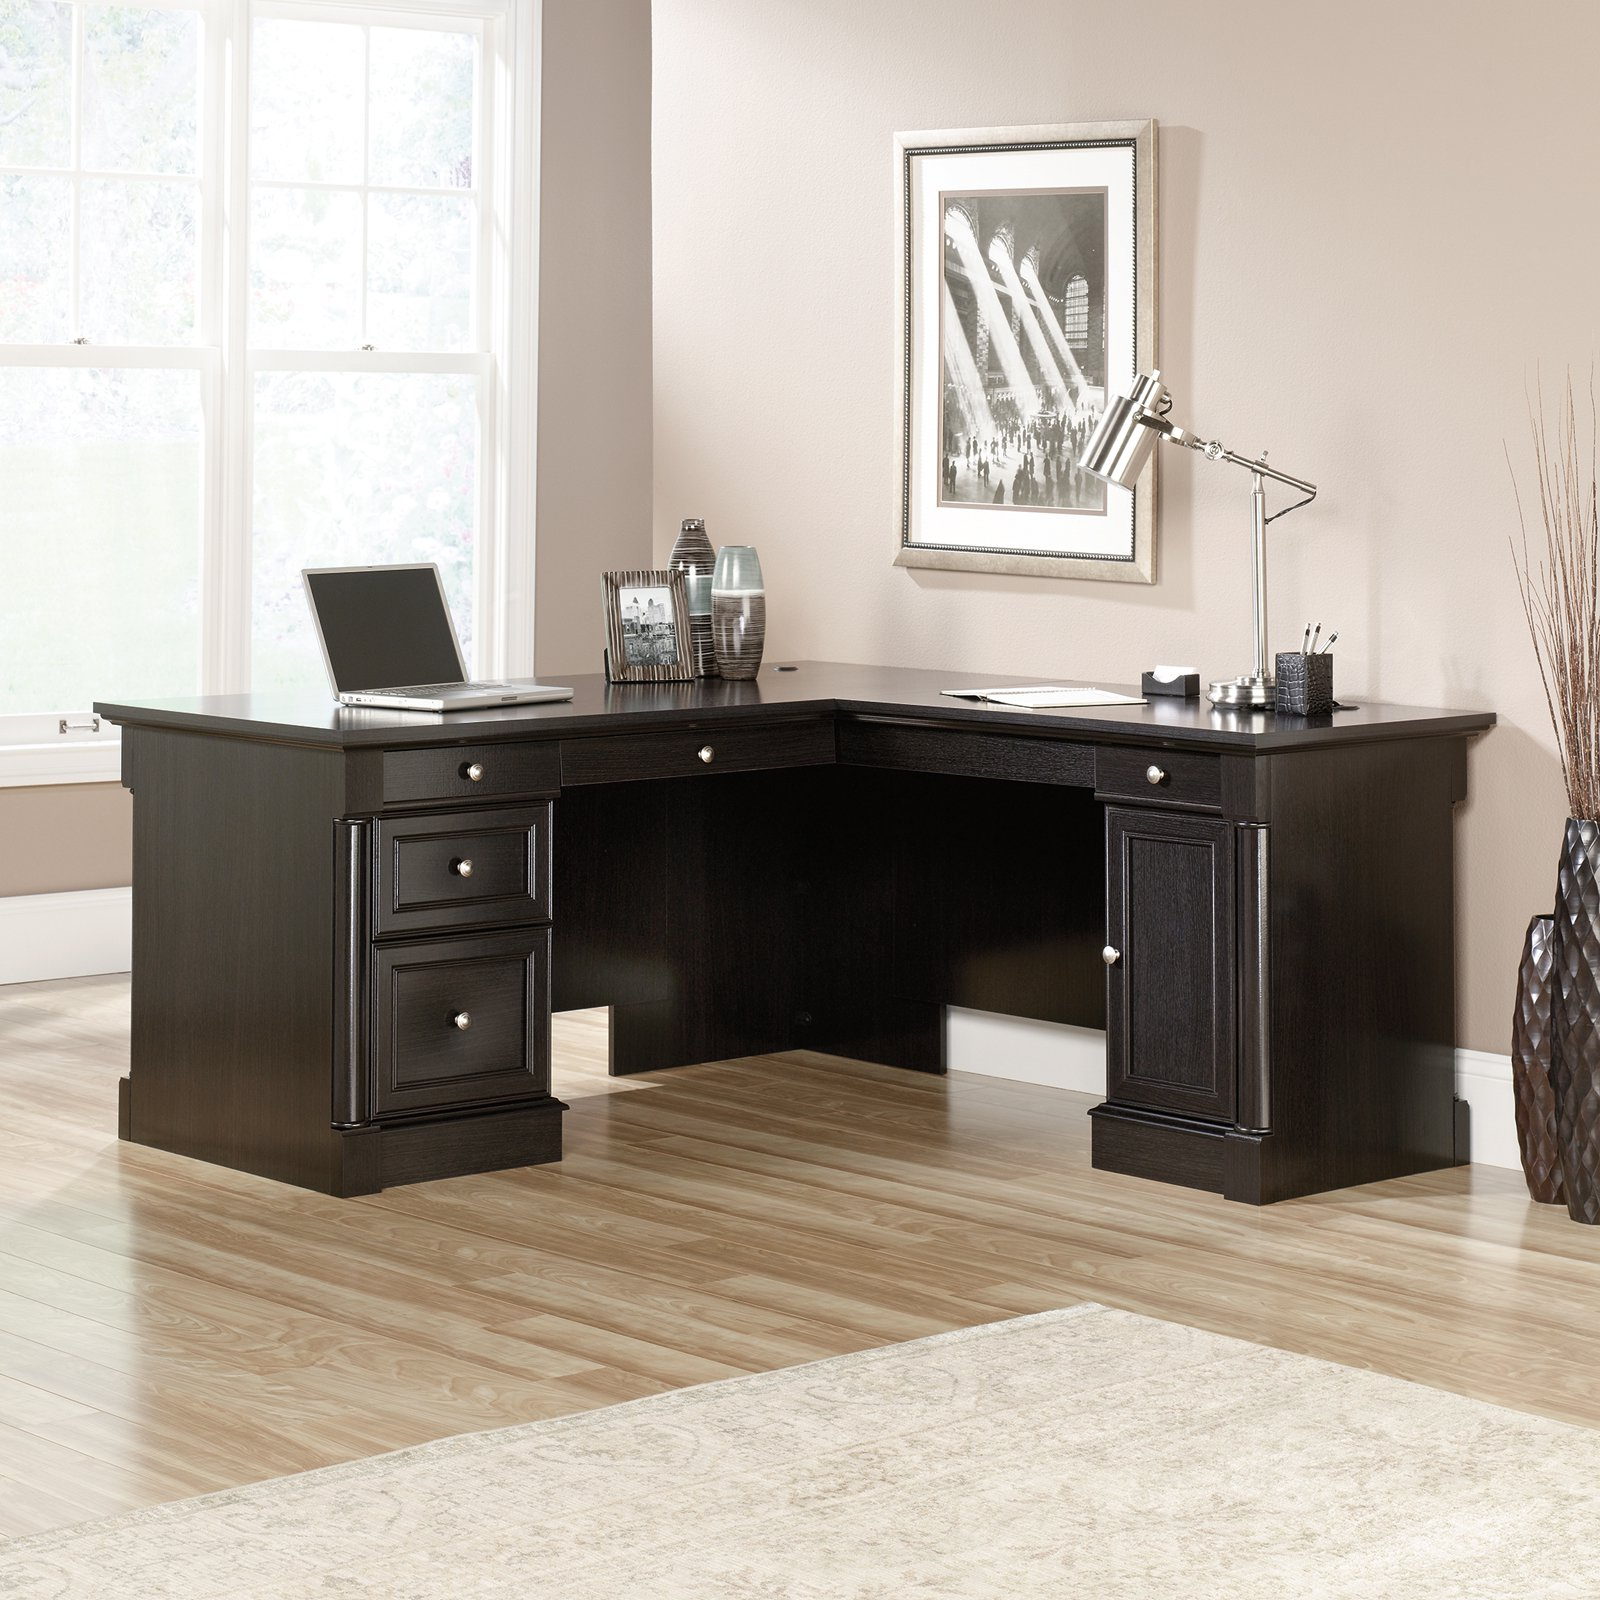 Sauder Avenue Eight L-Shaped Desk - Wind Oak